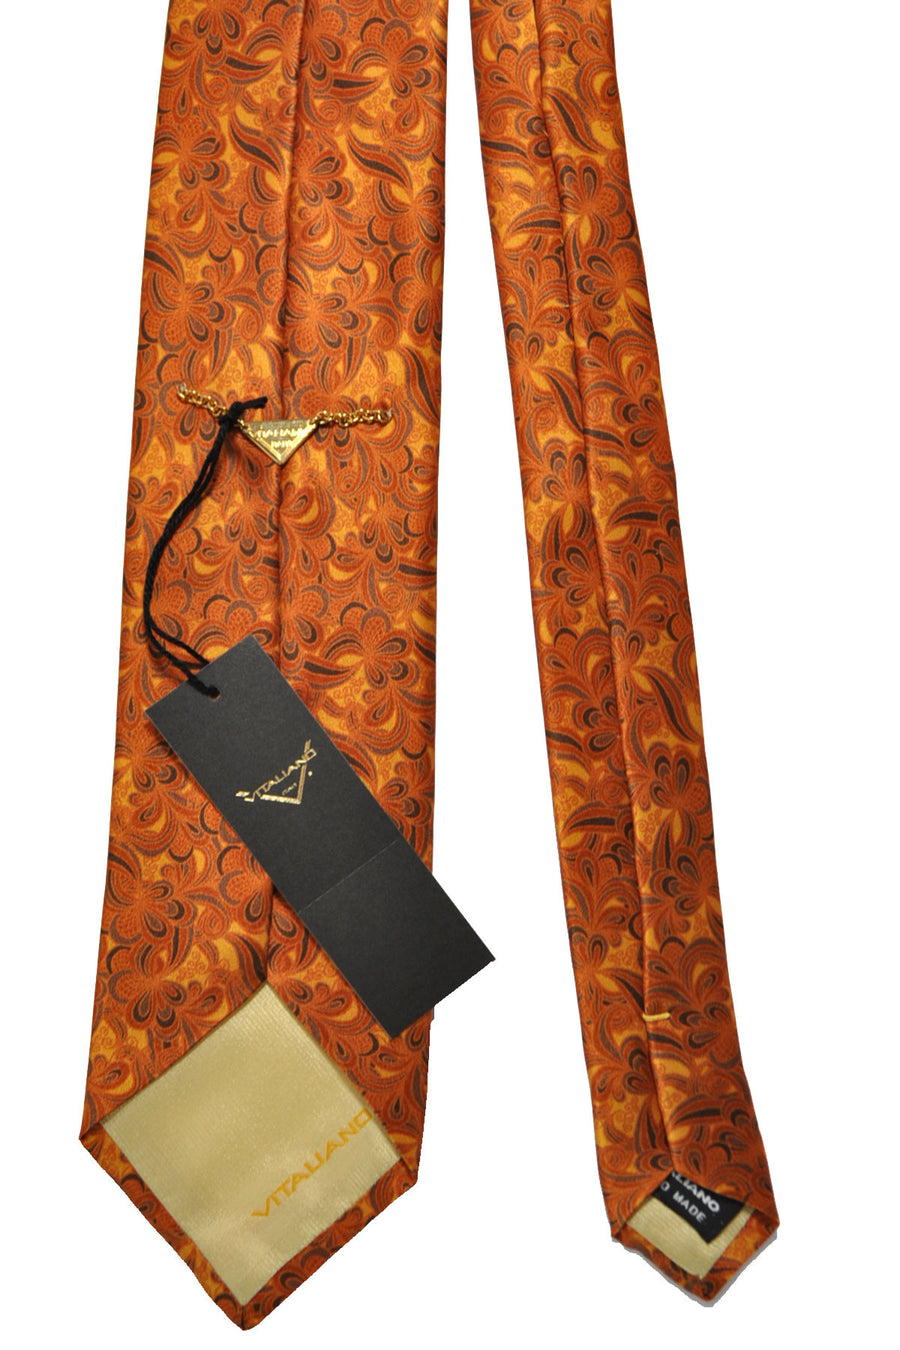 Vitaliano Pancaldi Tie Orange Brown Floral